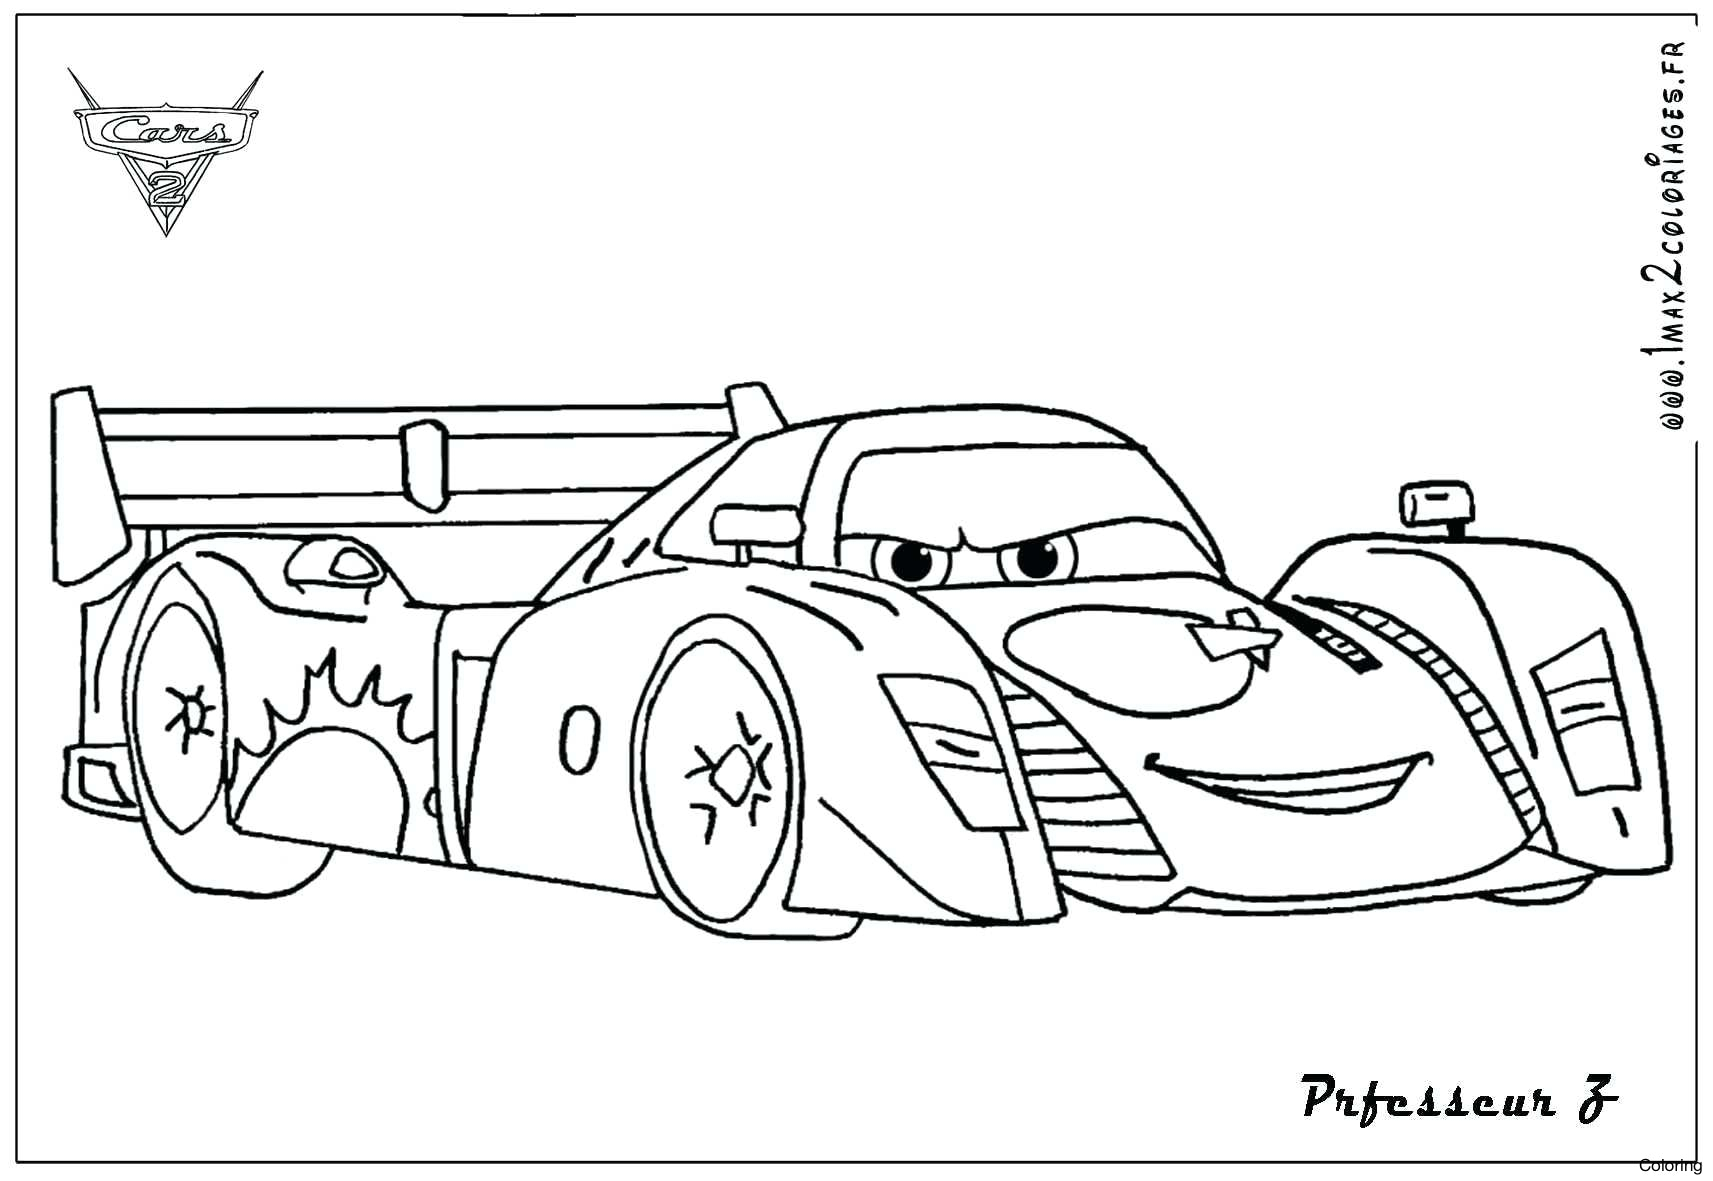 Full Size Car Coloring Pages Race 112 Outstanding Disney Cars 2 Gallery Of Cars 2 Coloring Pages with Cars 2 Coloring Pages with Cars 2 Gallery